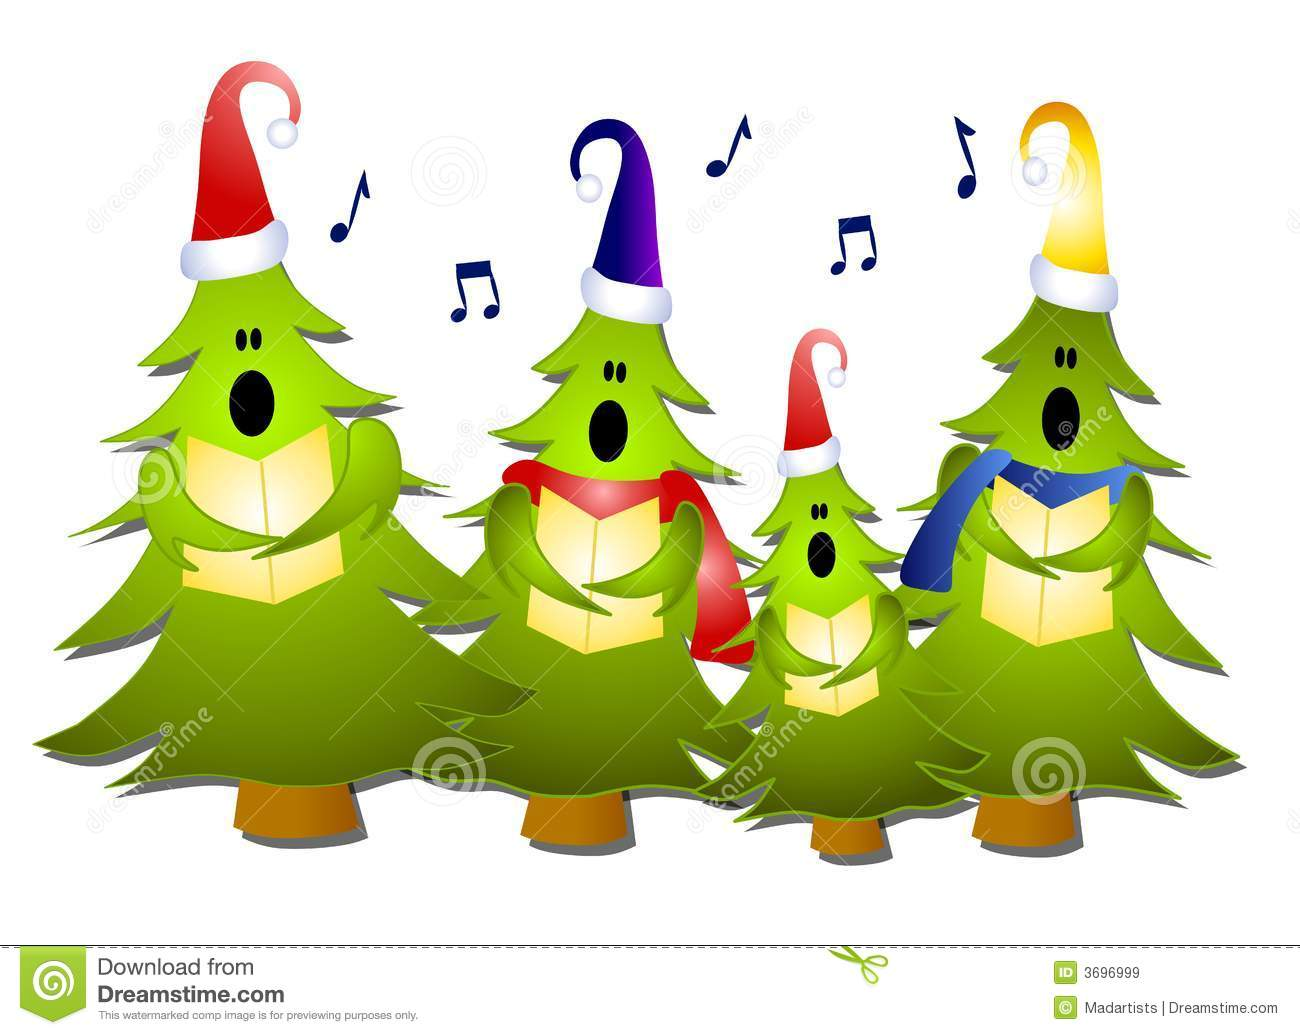 Clip Art Illustration Of A Group Of Christmas Tree Carolers Singing